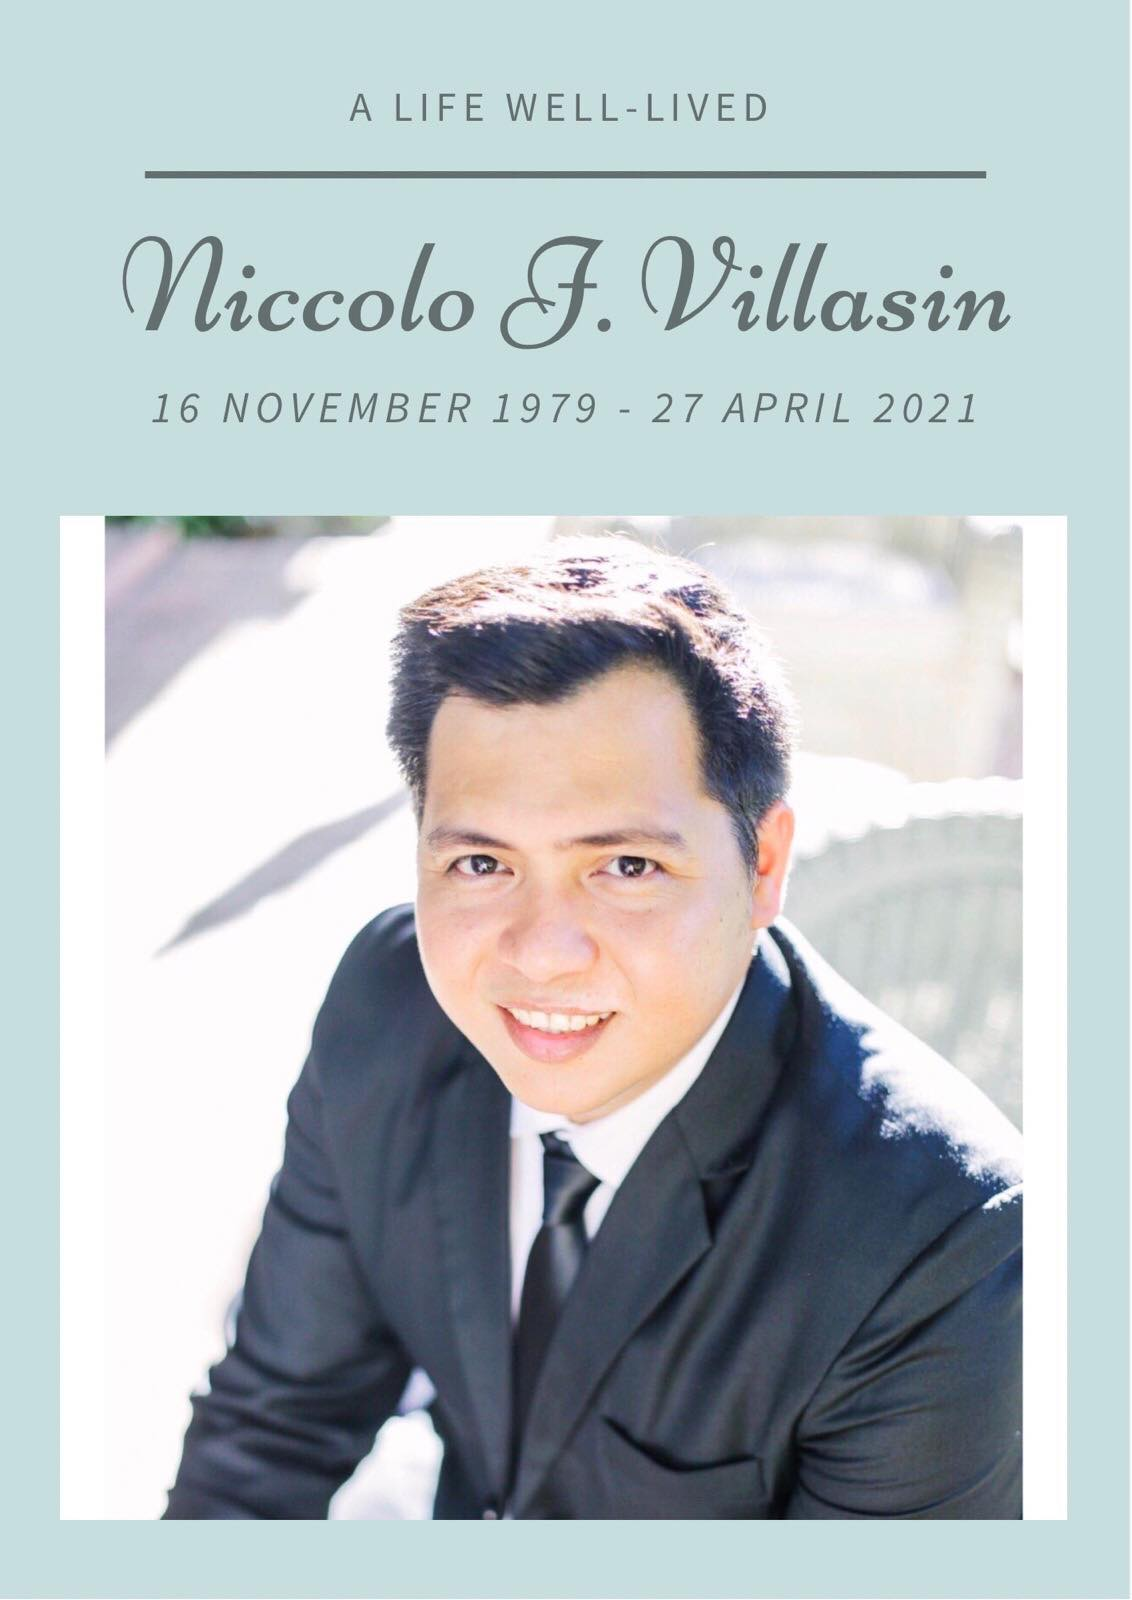 Atty. Niccolo J. Villasin joins the Creator